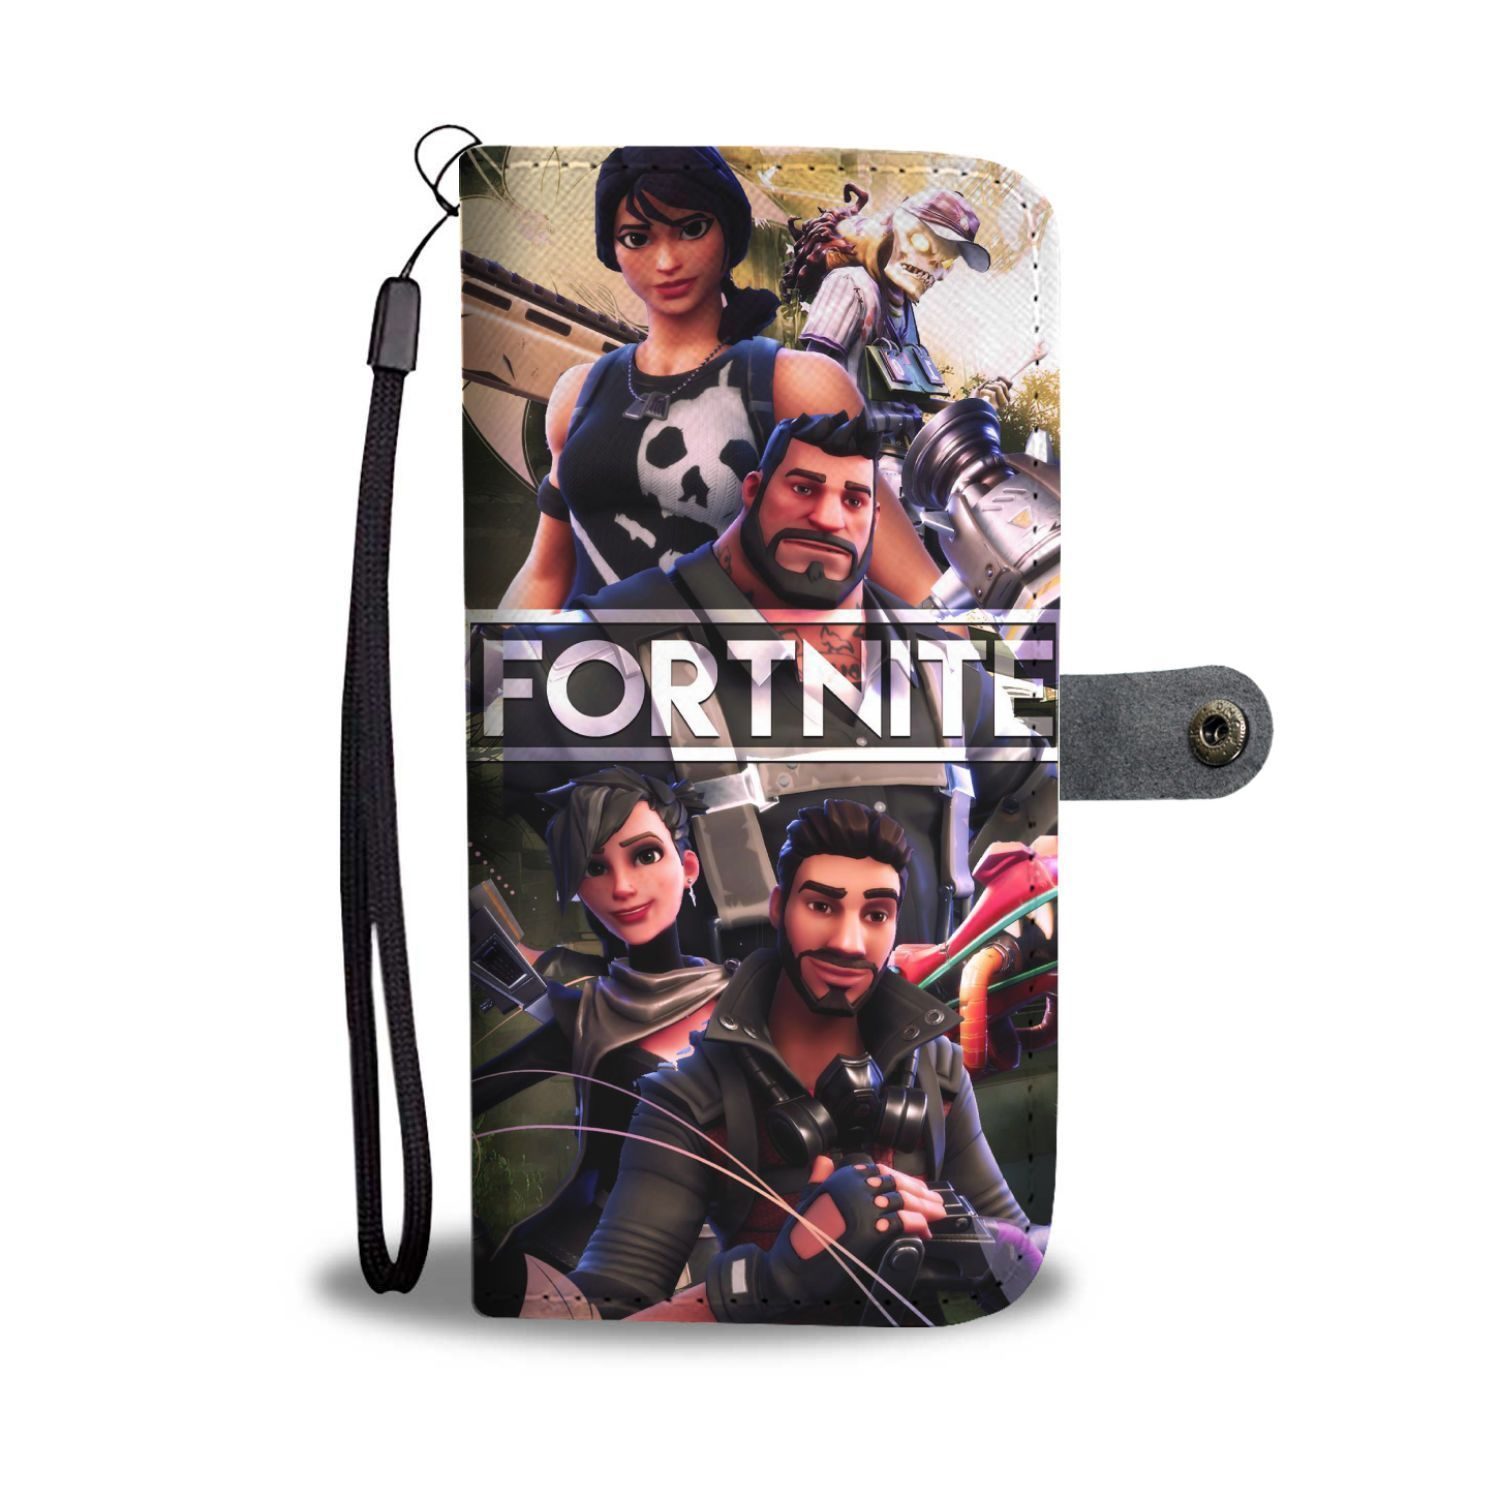 ad77a33e3 Fortnite Battle Royale Victory Royale Wallet Phone Case - Teeqq Store